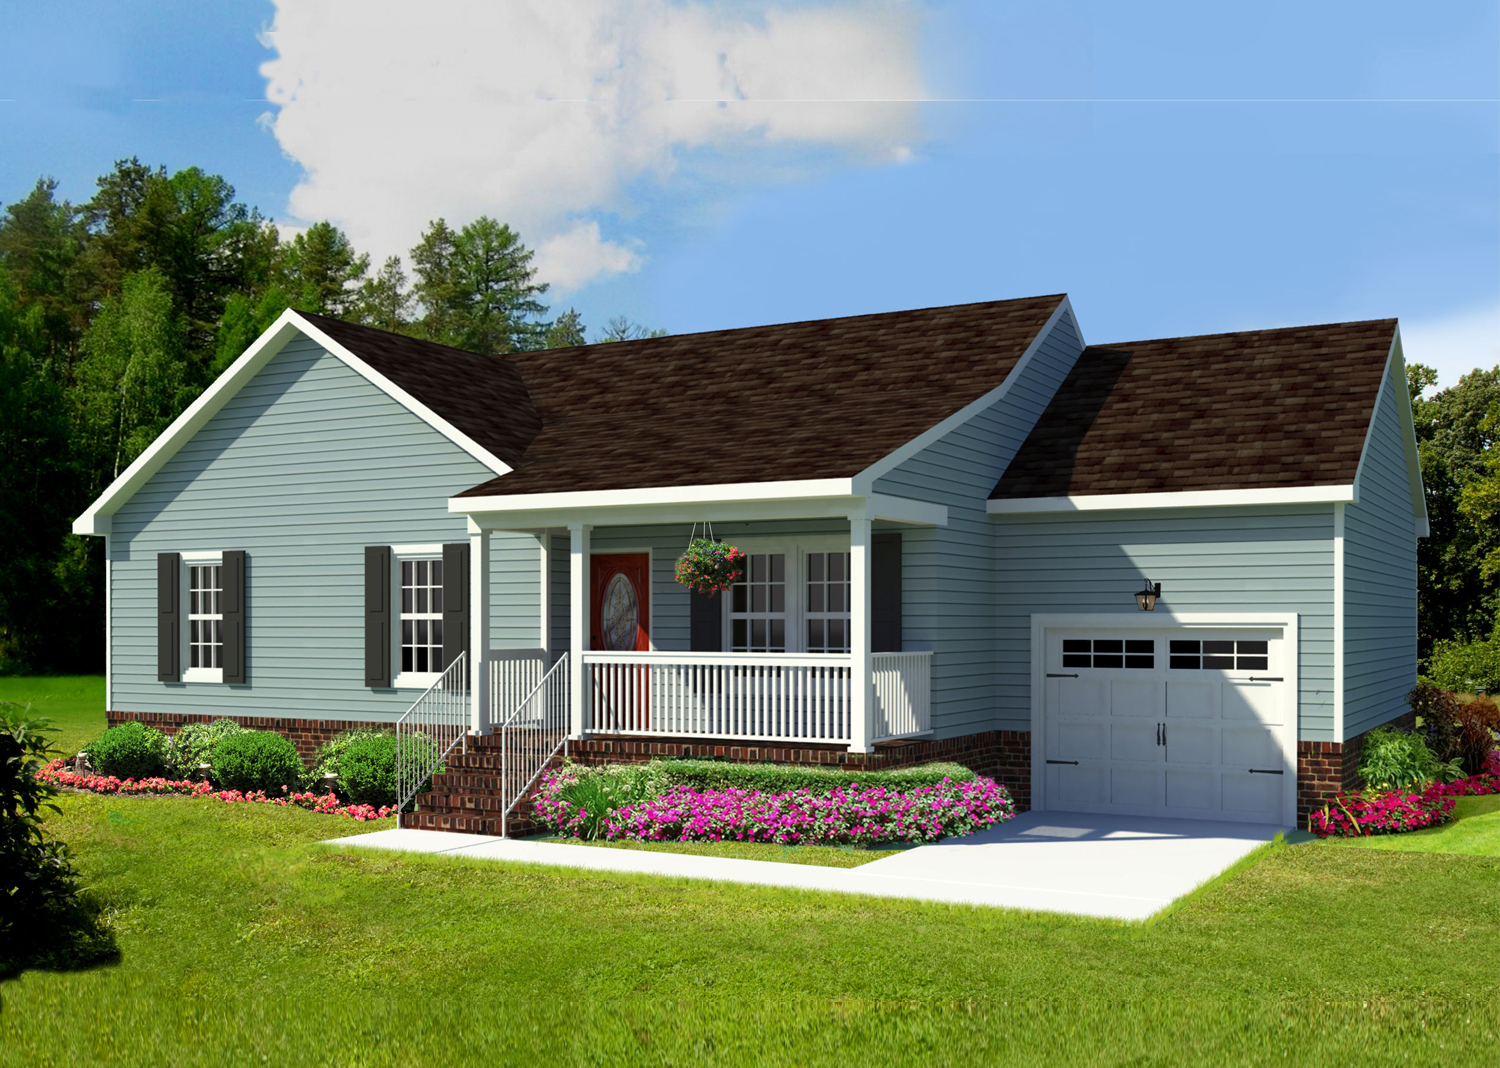 Beechwood New Construction Homes for Sale Suffolk VA AB Homes